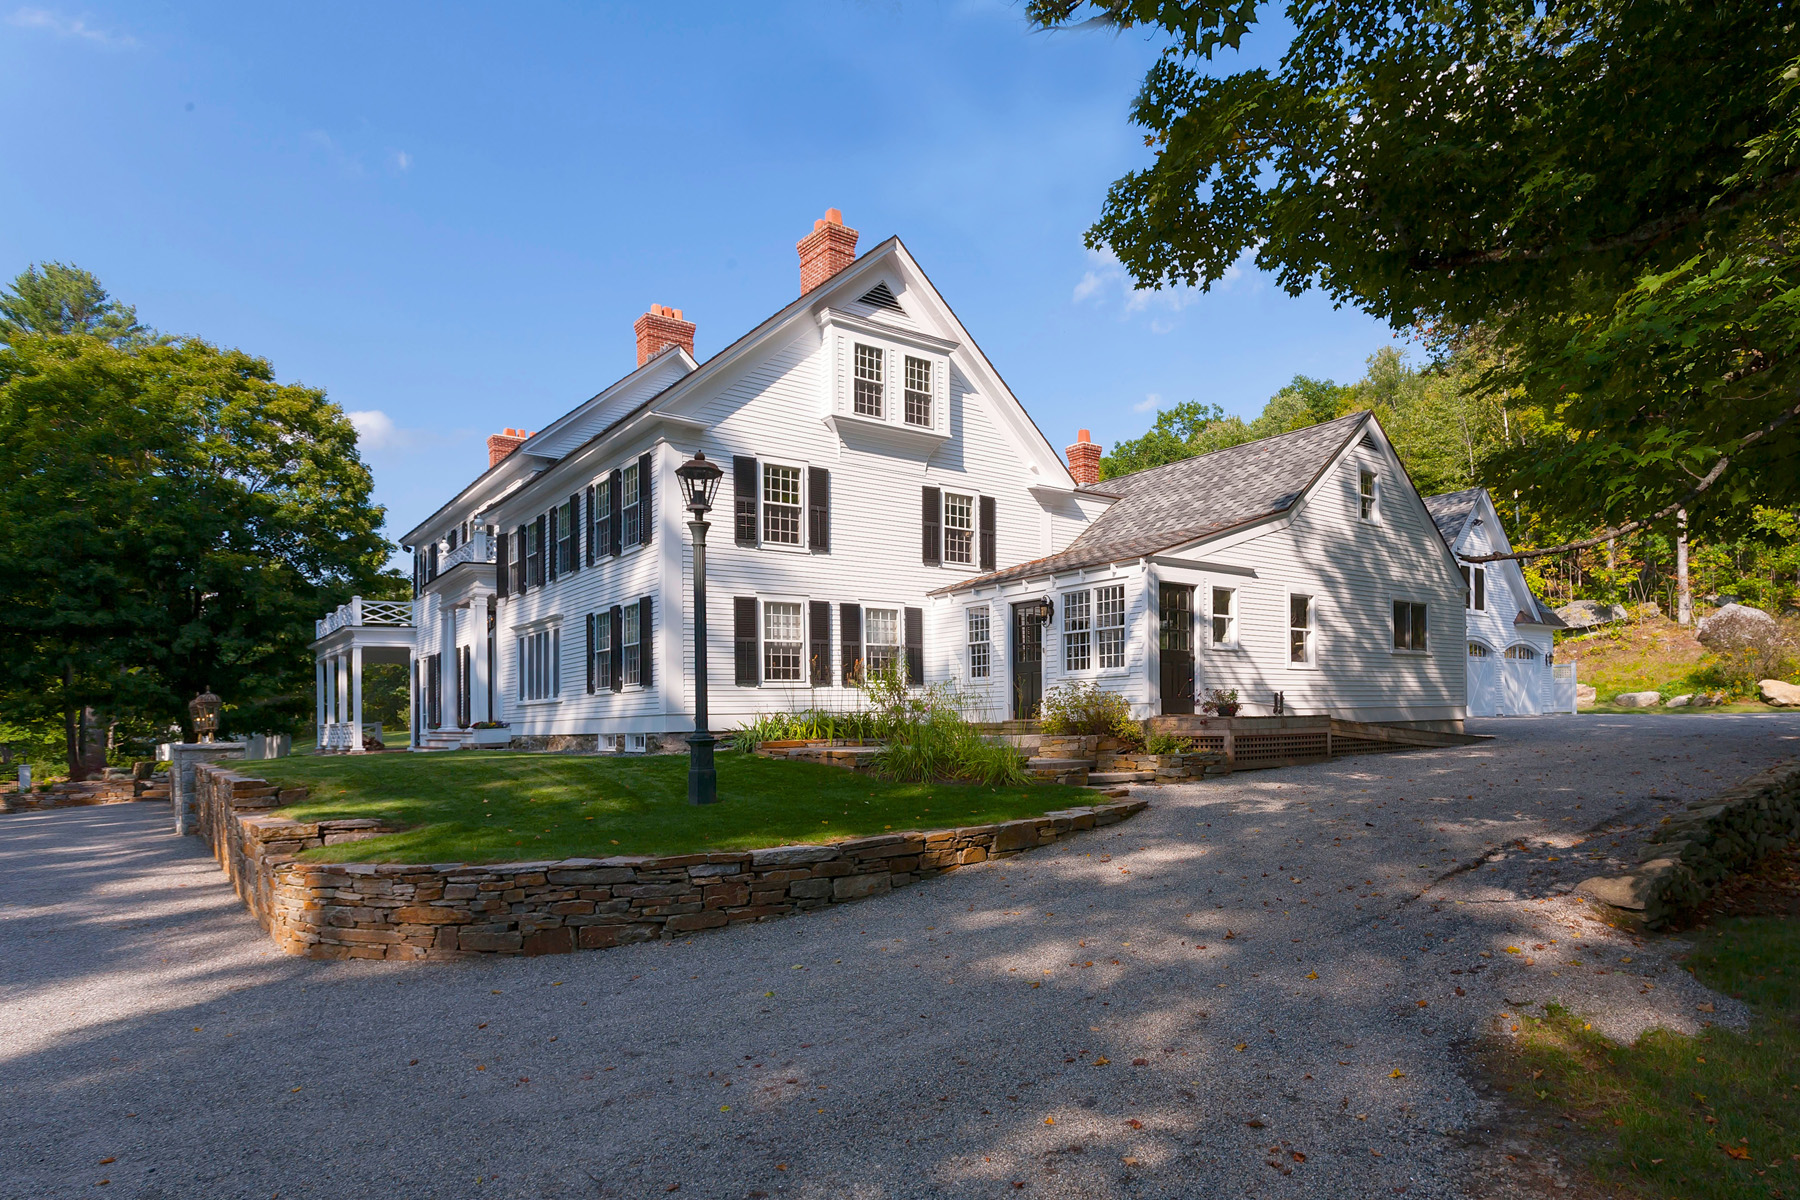 Single Family Home for Sale at Historic Property 523 North Main St Newport, New Hampshire 03773 United States